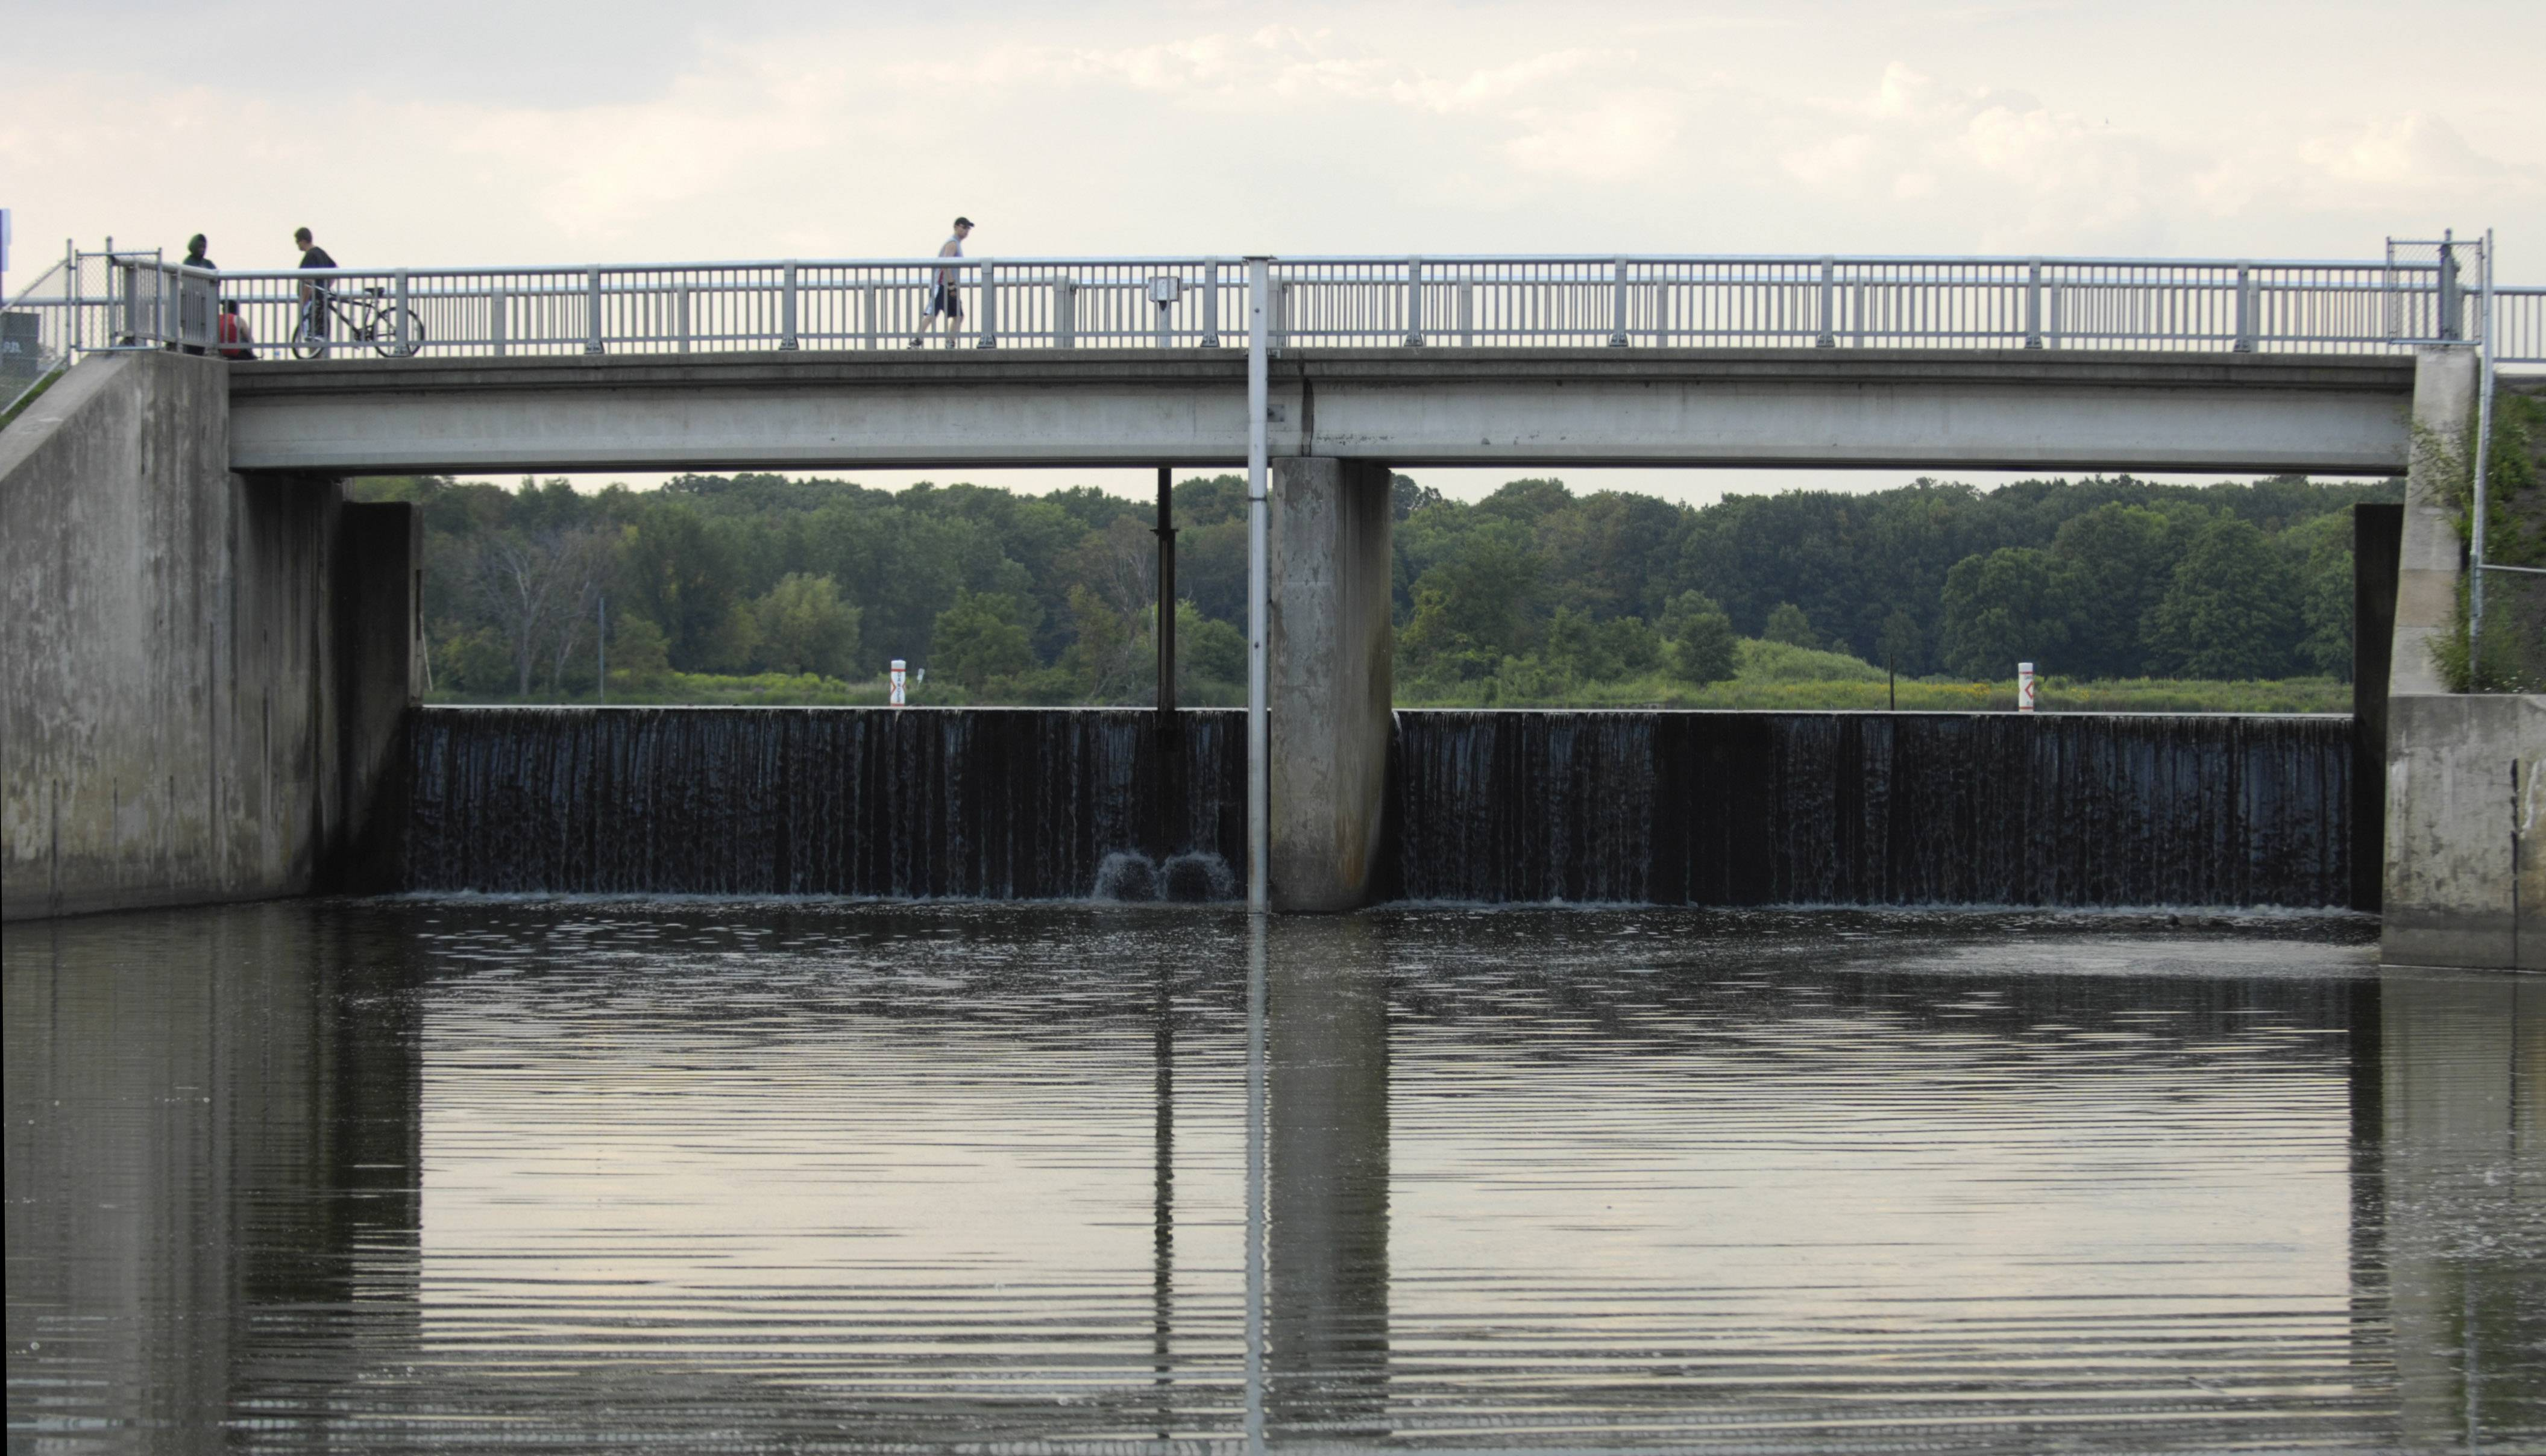 An engineering consultant will develop final design plans for an estimated $3 million project to modify the Busse Woods Dam in Elk Grove Village to reduce the risk of flooding along Salt Creek.